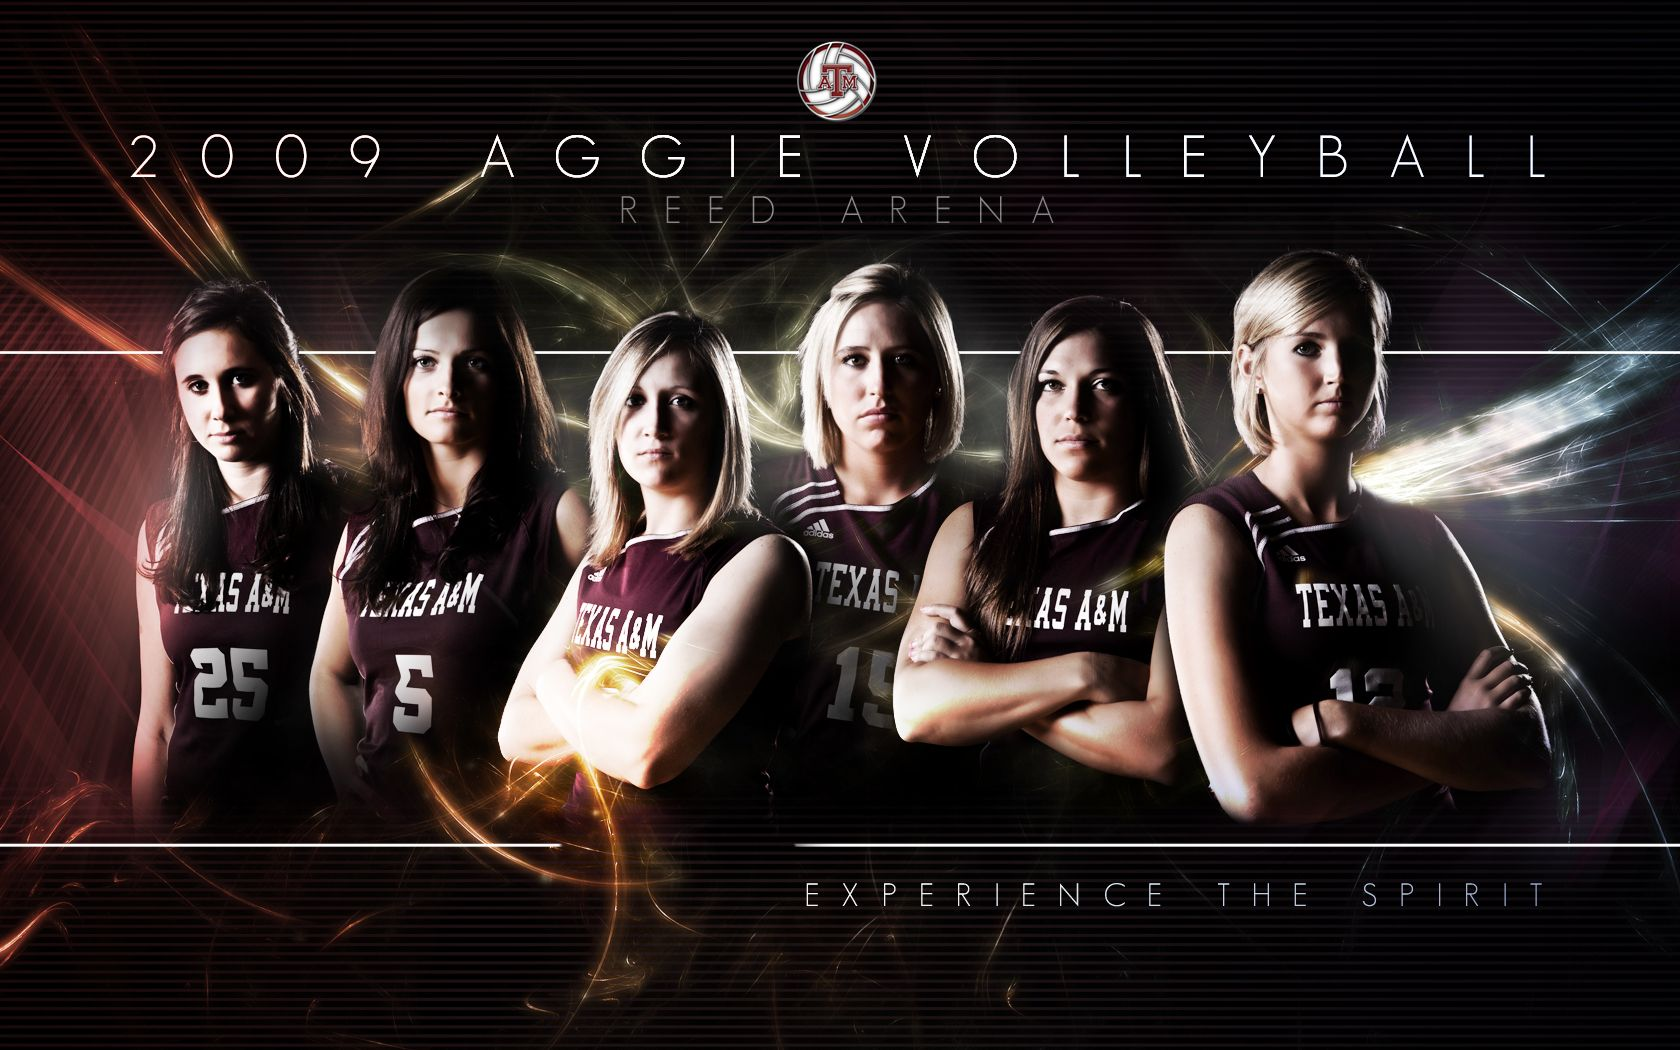 Volleyball Wallpaper Volleyball Wallpaper Volleyball Photography Volleyball Team